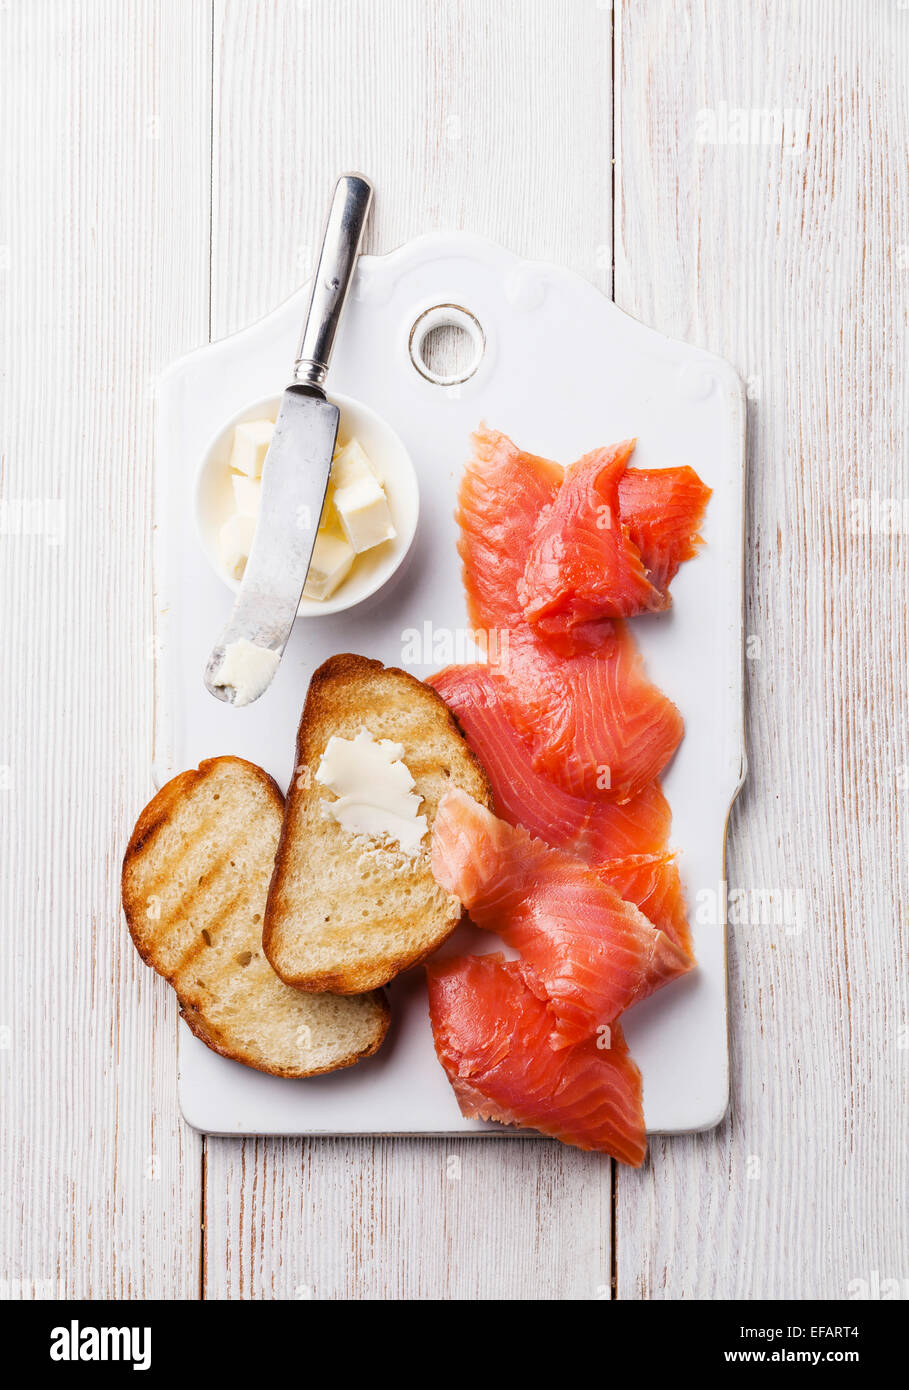 Salted smoked red fish and grilled slices of bread for breakfast - Stock Image